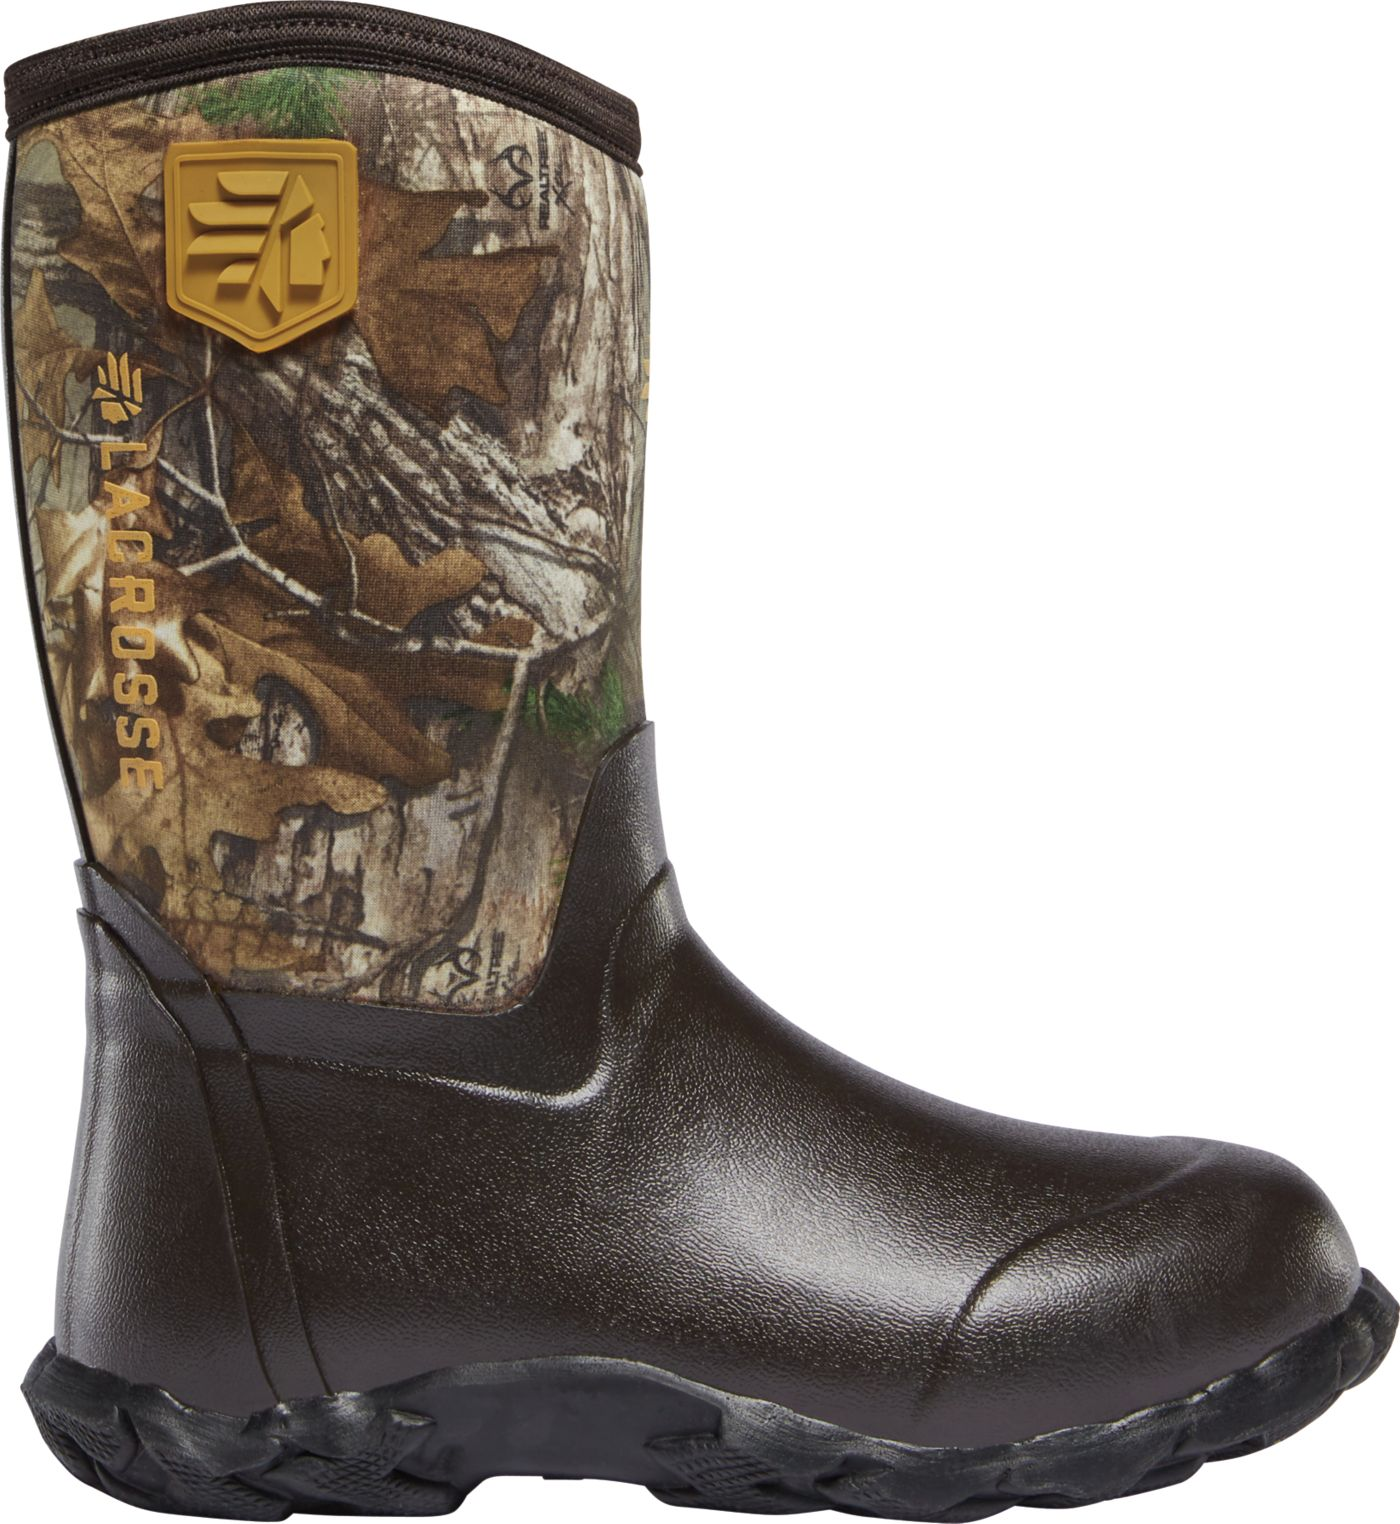 LaCrosse Kids' Lil' Alpha Lite Realtree Xtra 5.0mm Rubber Hunting Boots